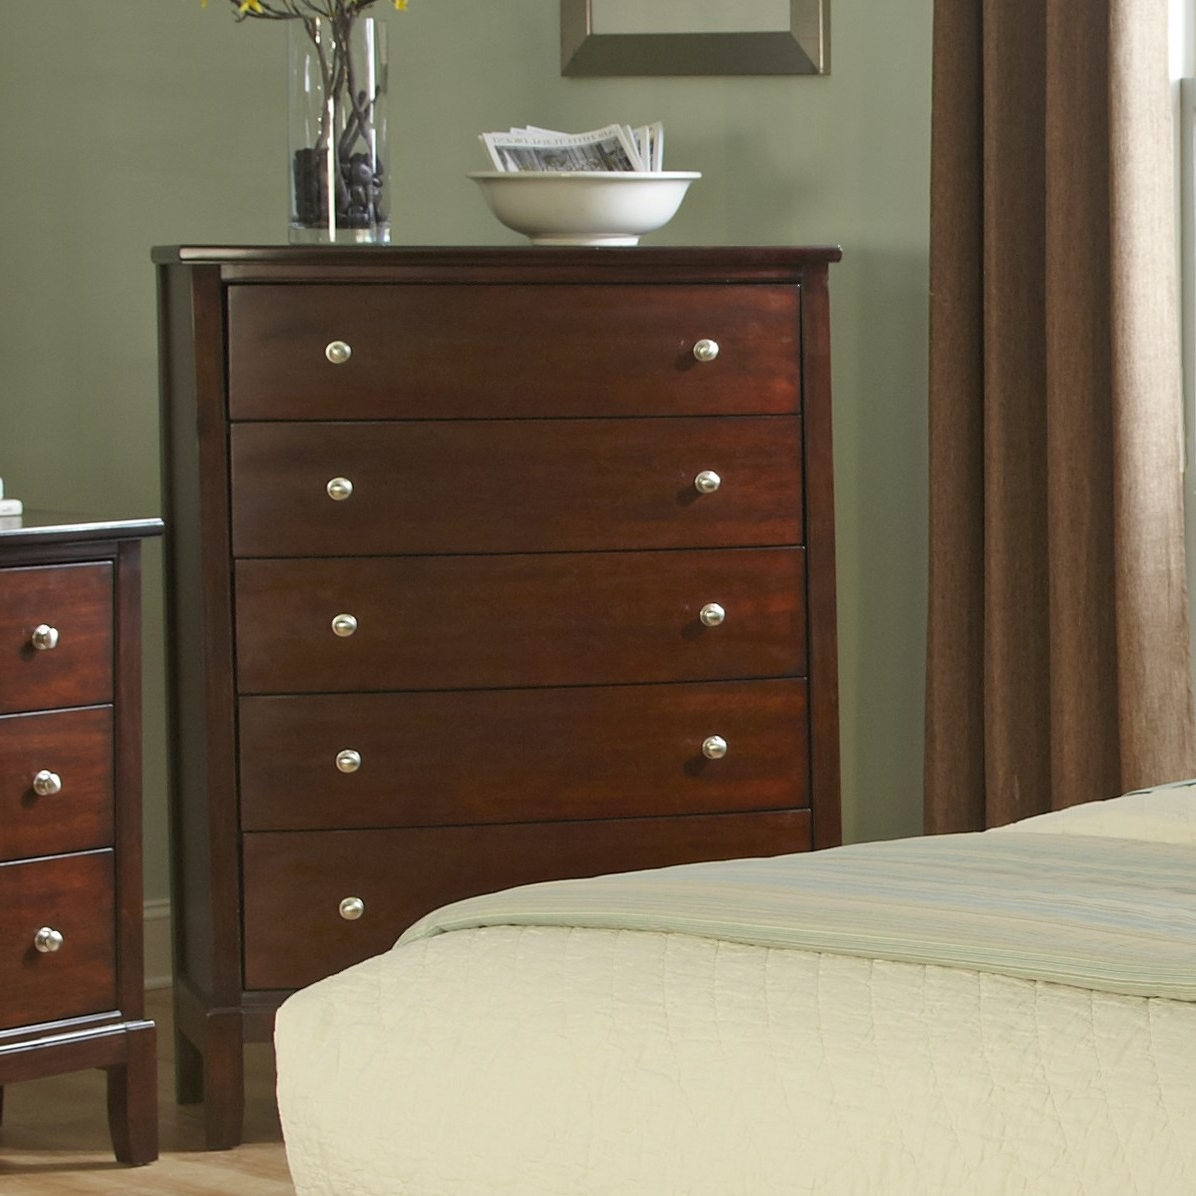 Details About Wildon Home® Denver 5 Drawer Chest Within Sideboards By Wildon Home (View 17 of 20)